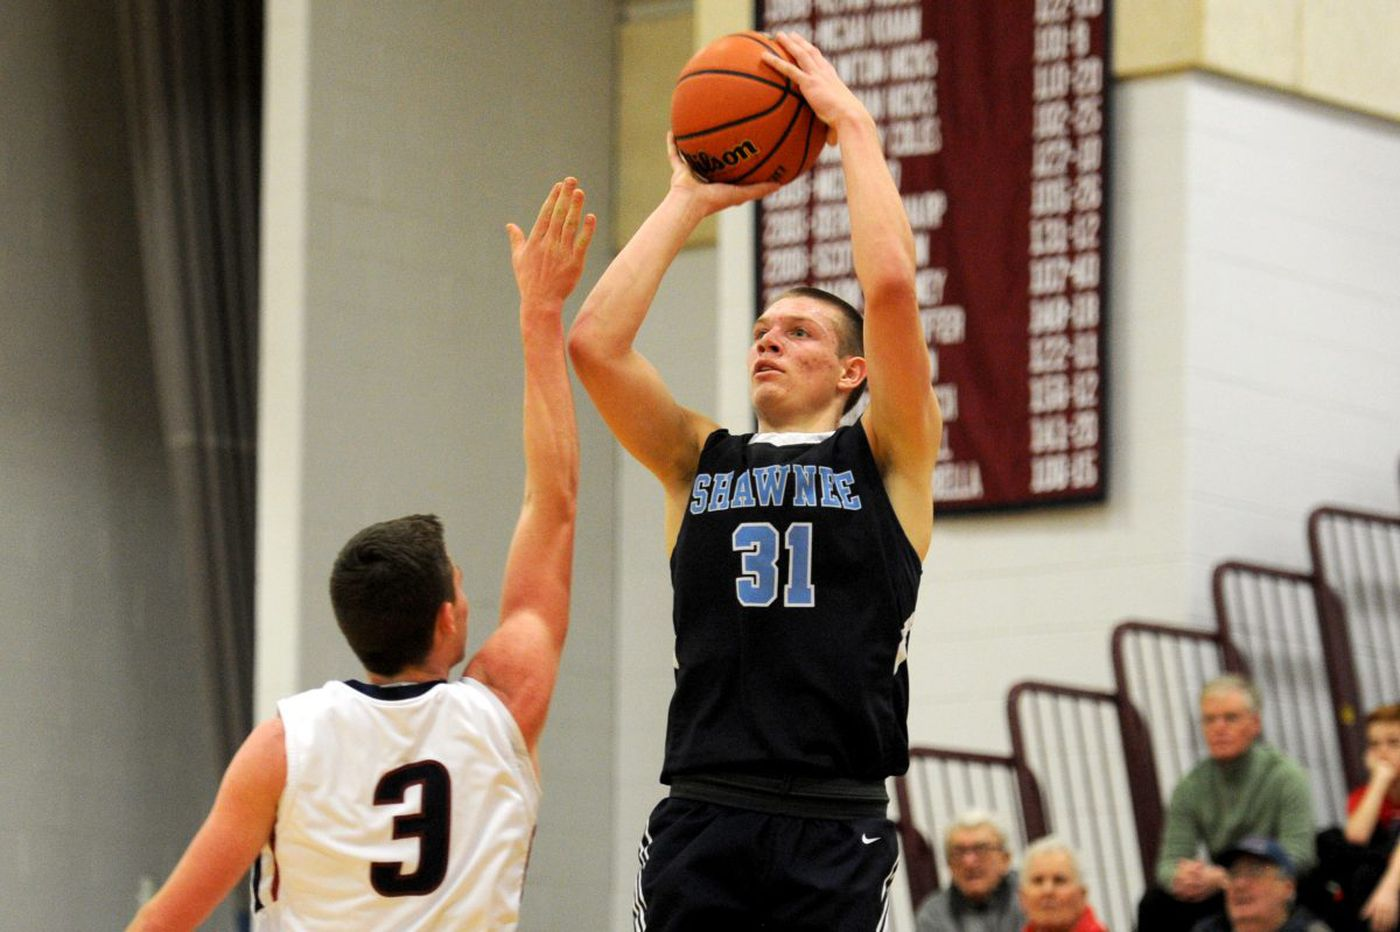 Tuesday's S.J. roundup: Dean Noll scores 29 and tops 1,000 career points in Shawnee's win over Winslow Township